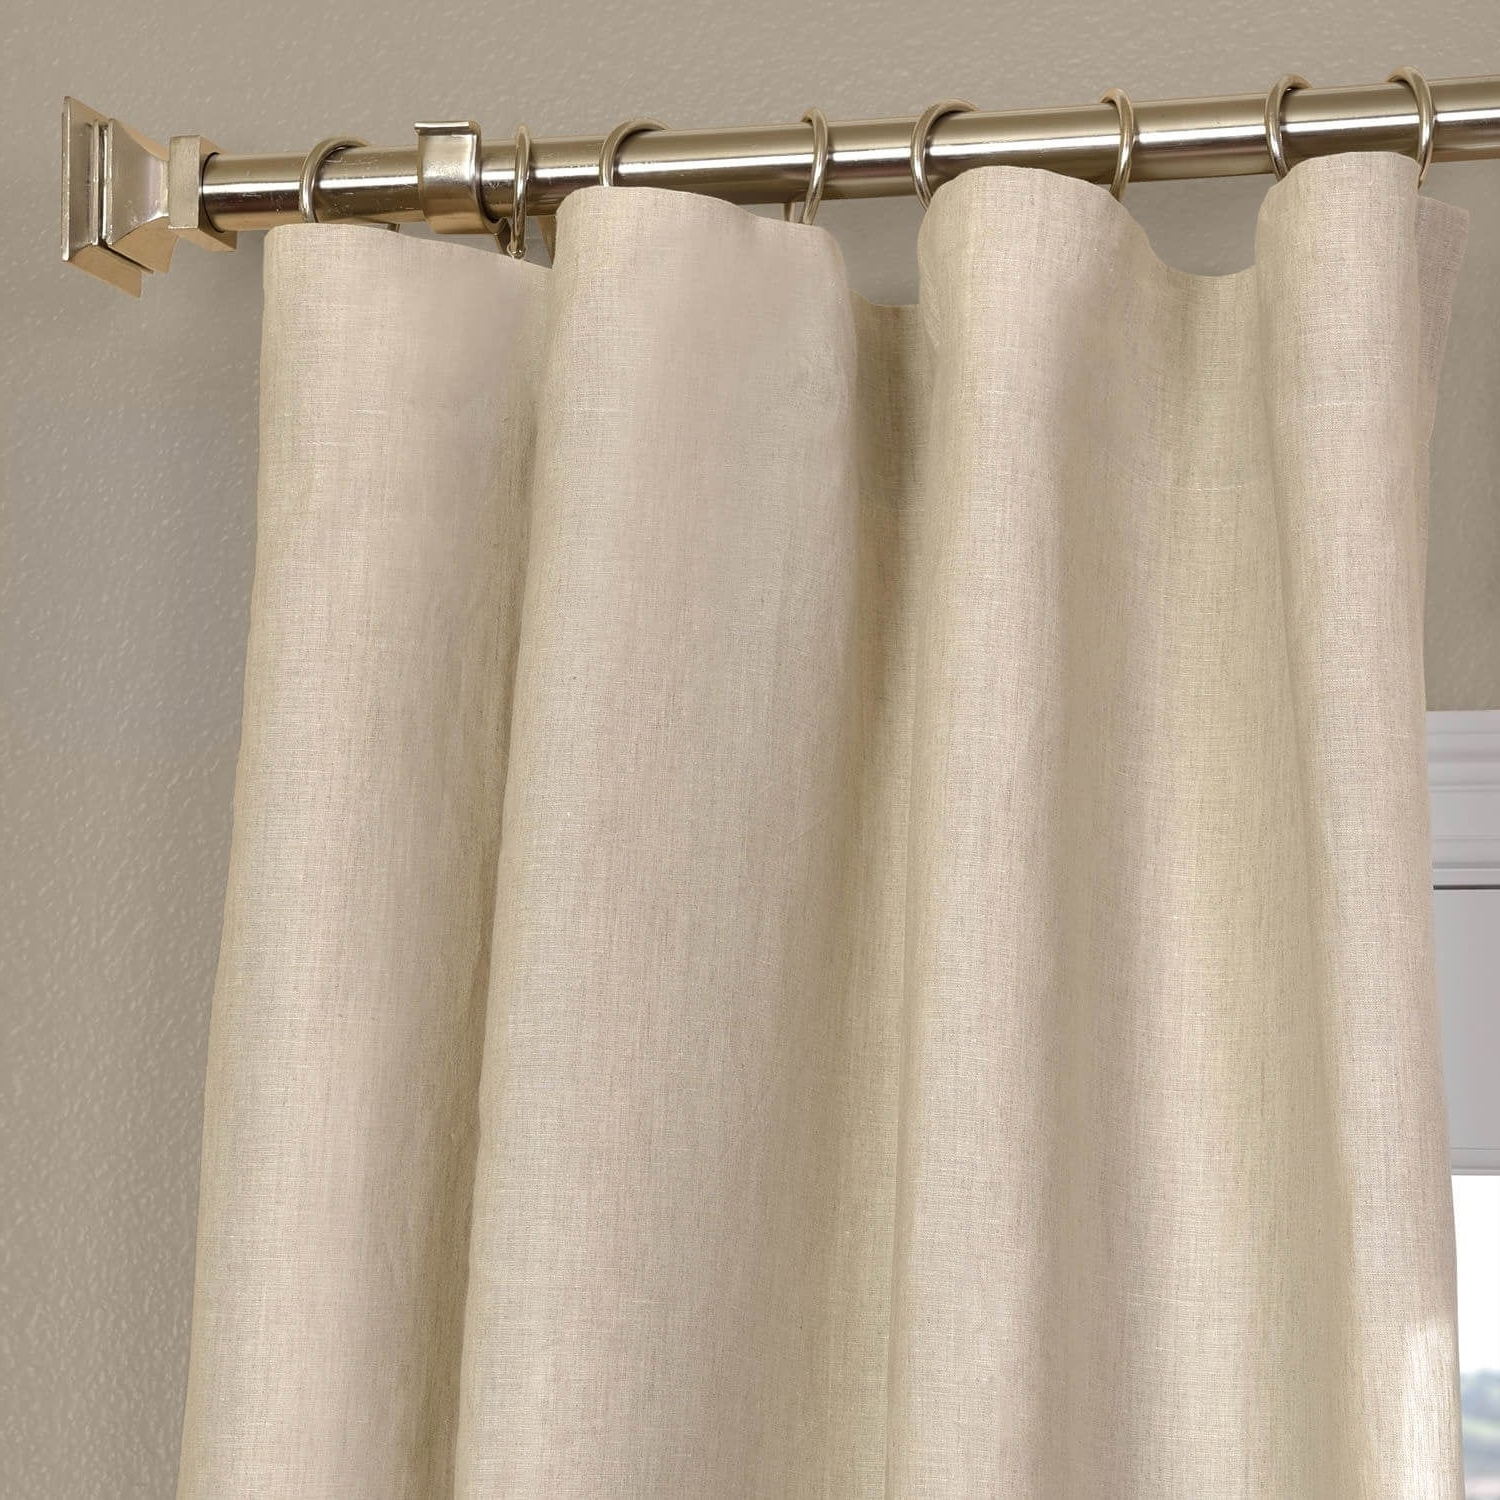 Most Recently Released Signature French Linen Curtain Panels Intended For Exclusive Fabrics Signature French Linen Curtain Panel (View 7 of 20)